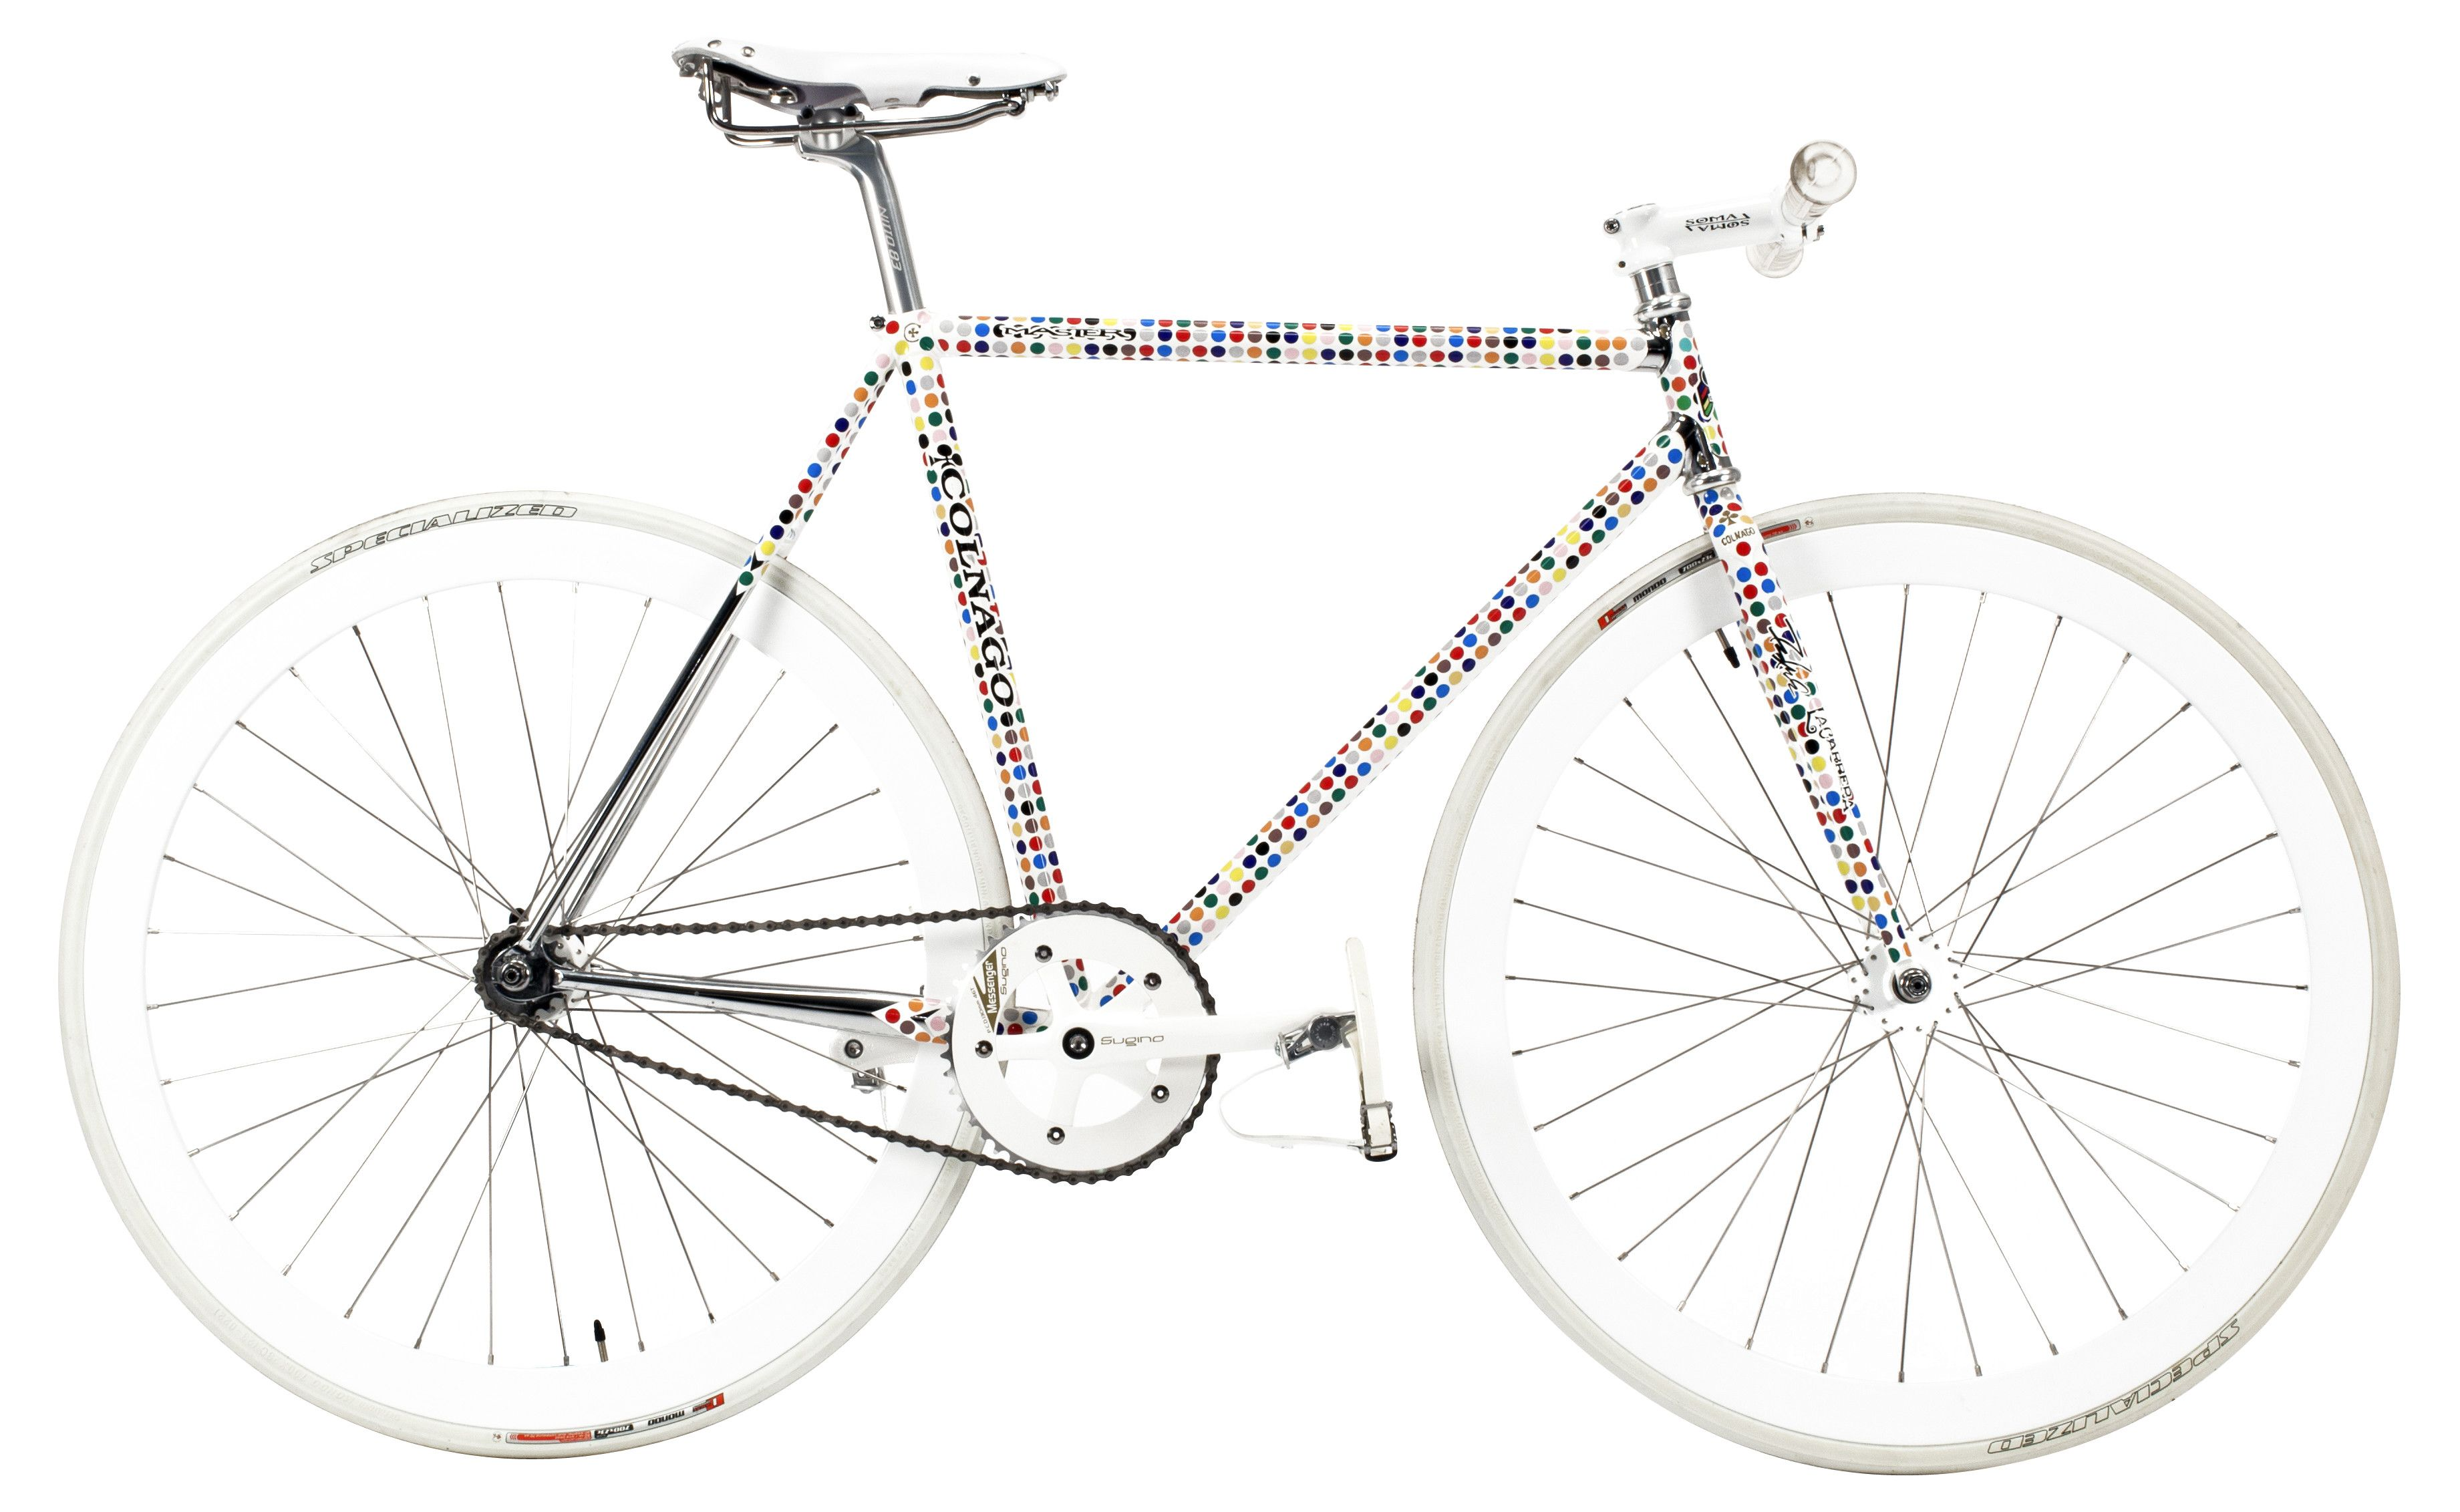 Master Pista, La Carrera, Futura 2000 by Colnago and La Carrera on ...